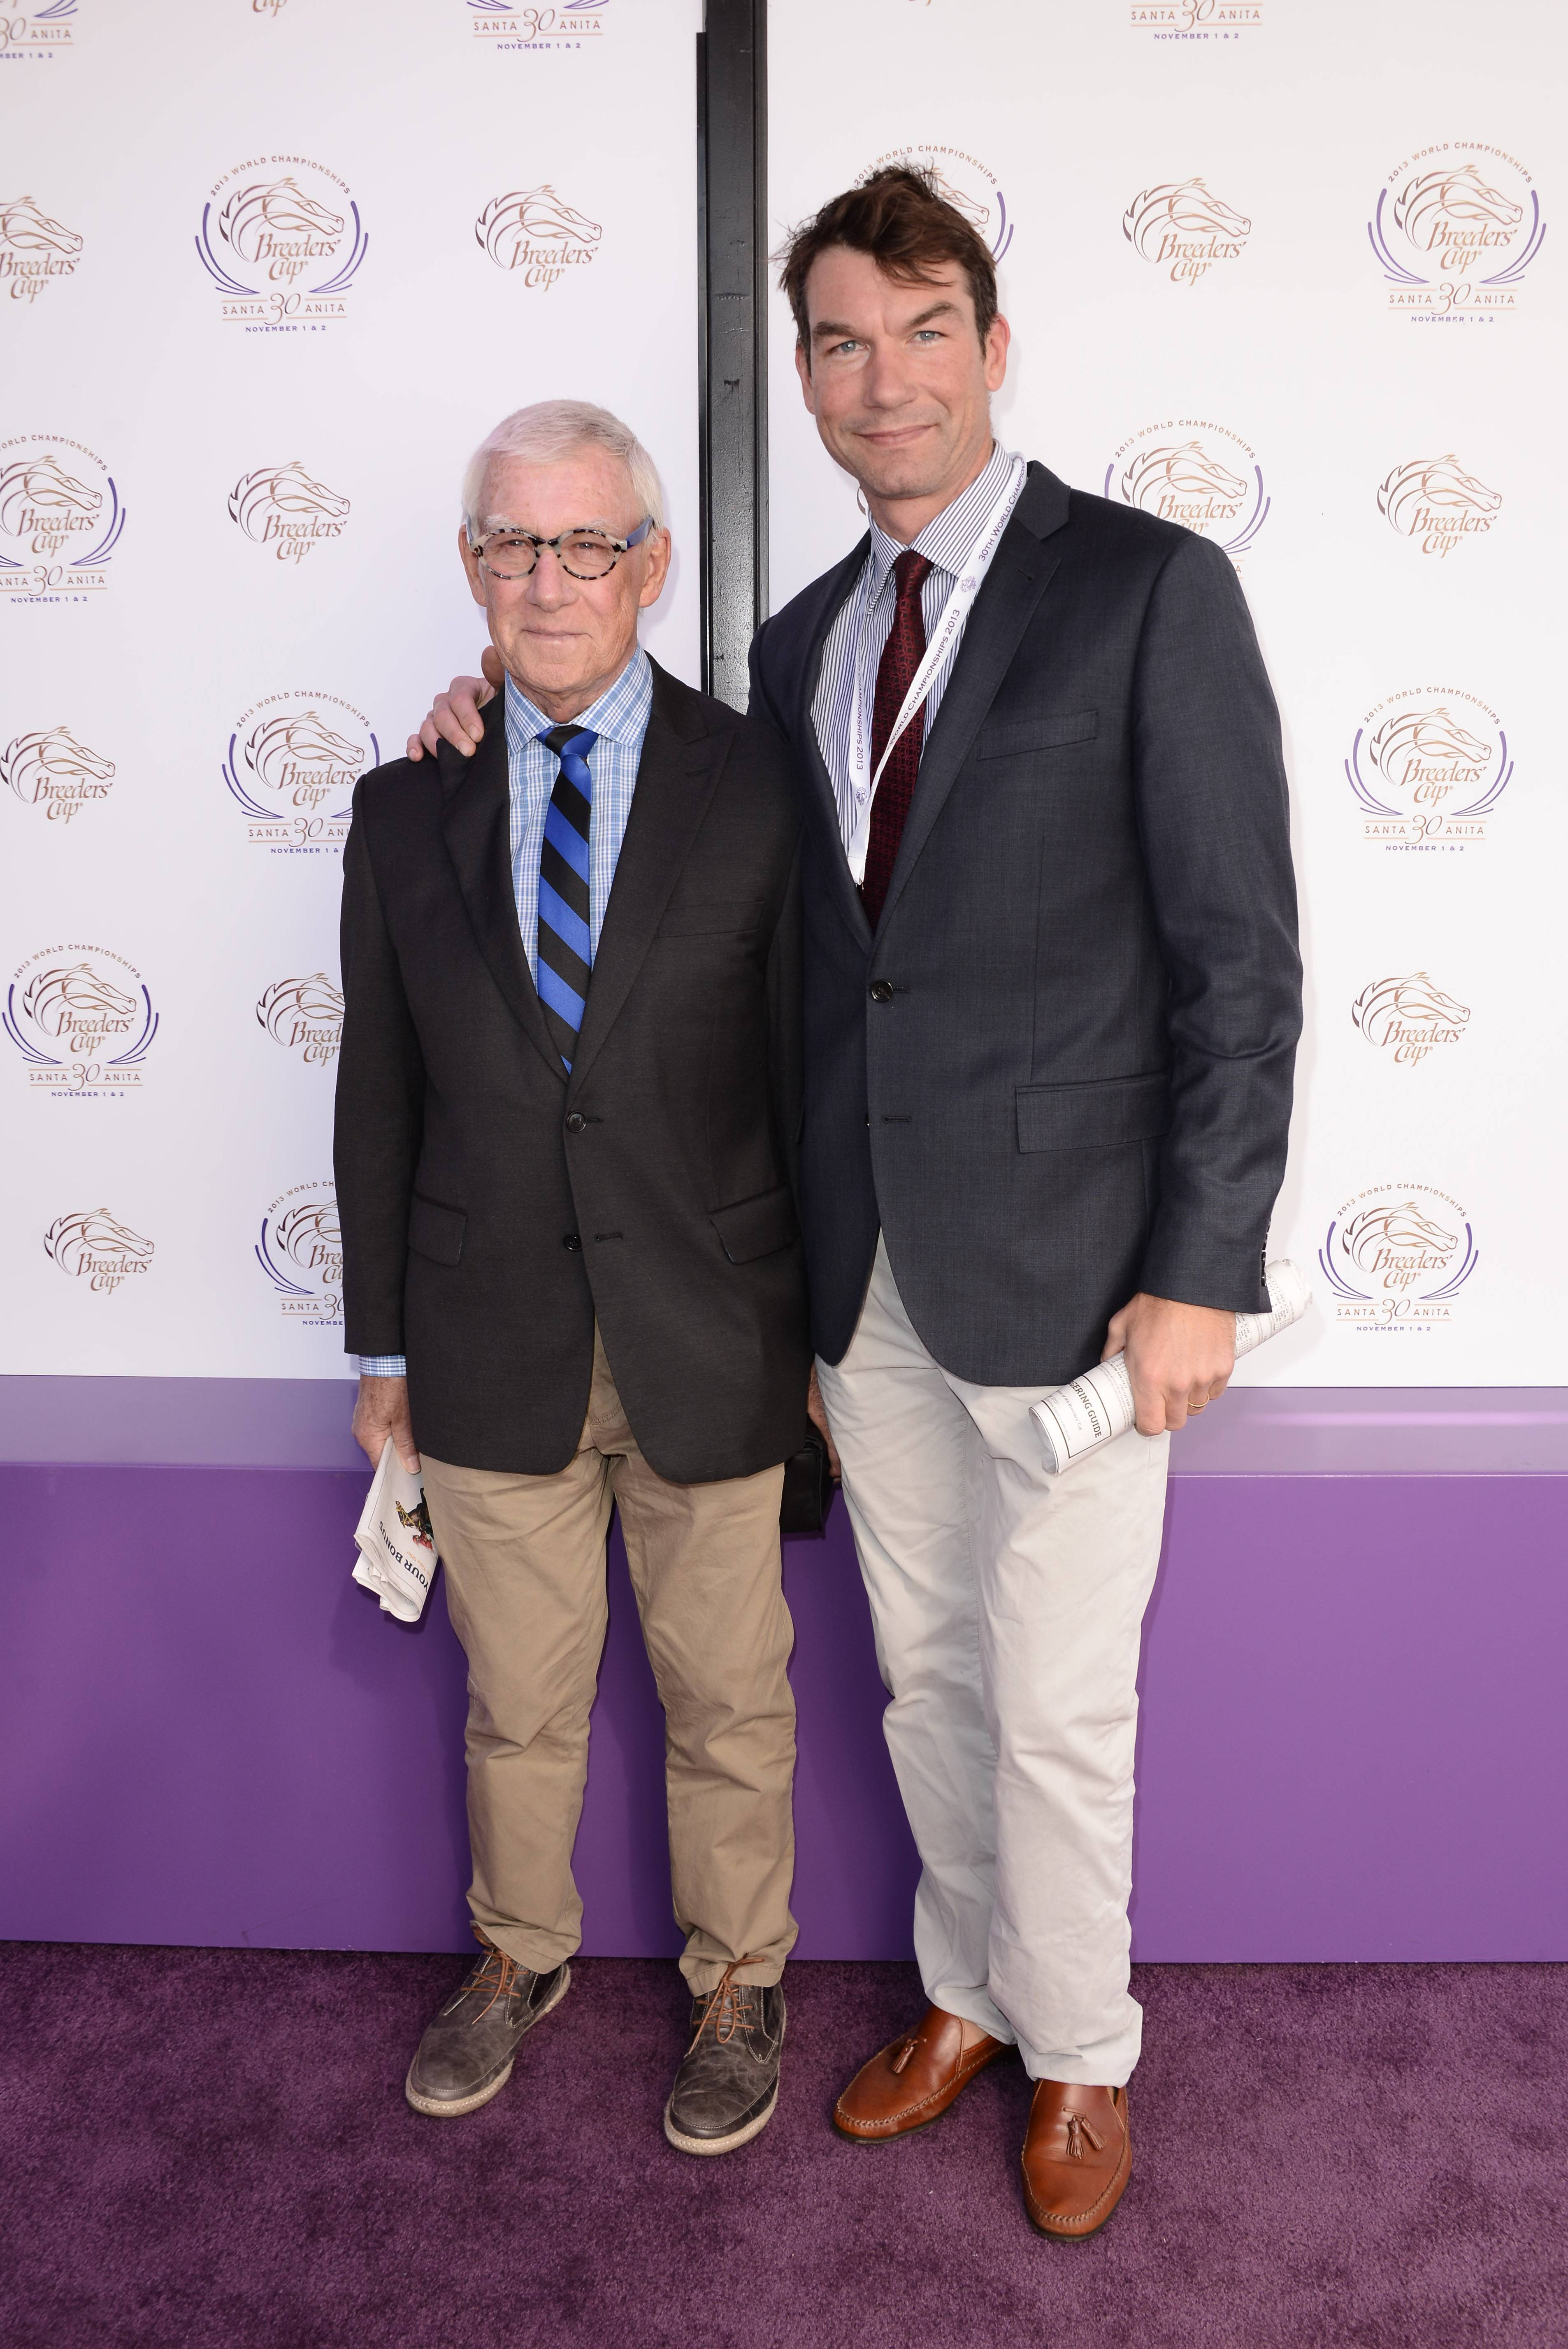 Michael O'Connell, Jerry O'Connell